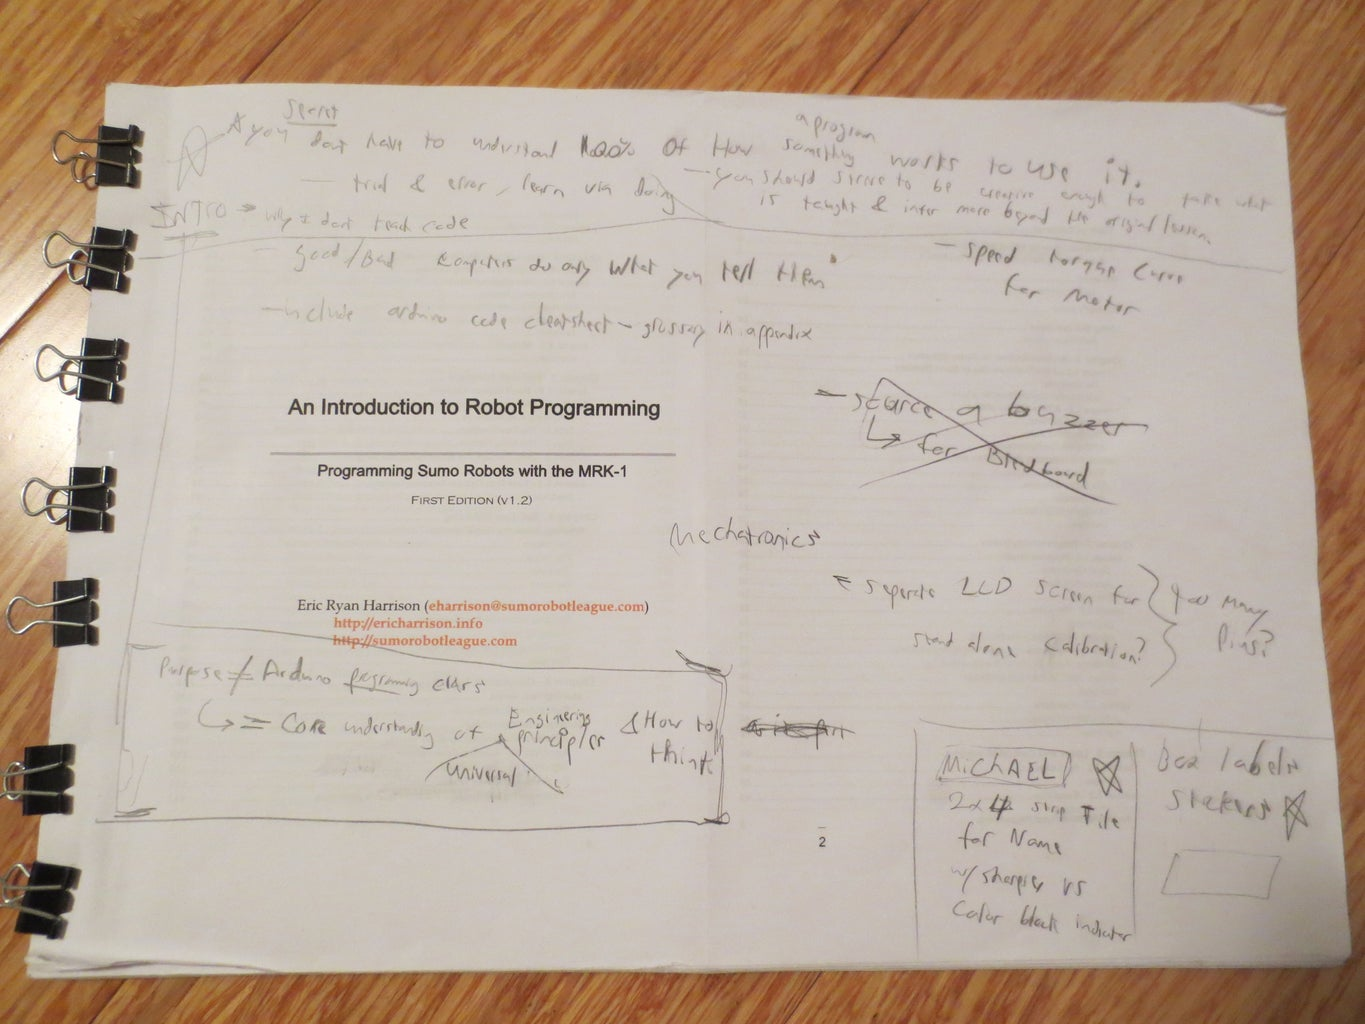 Further Reading & Final Notes